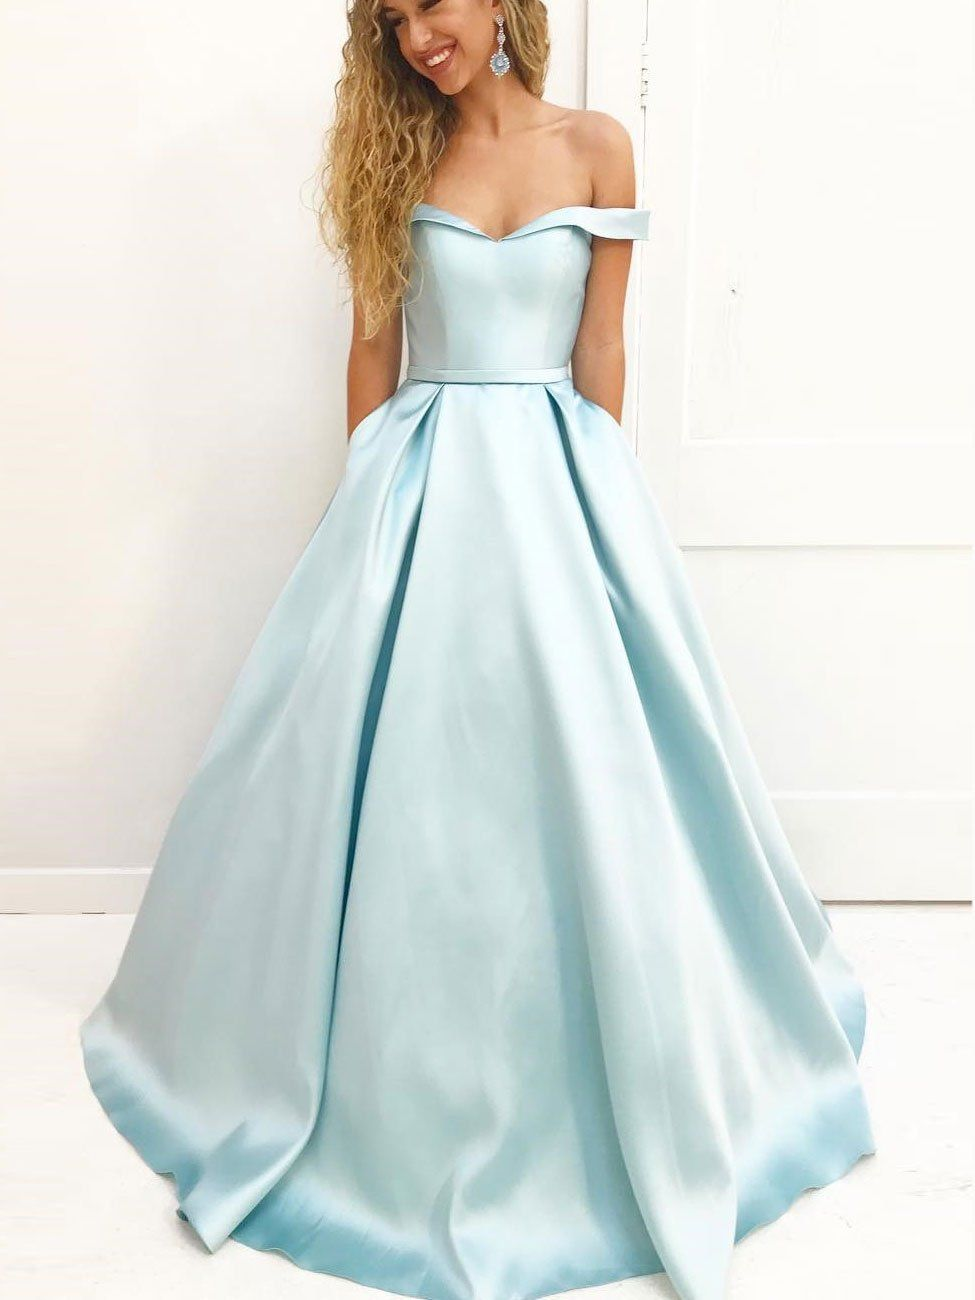 Off the shoulder simple long prom dressescheap simple formal prom